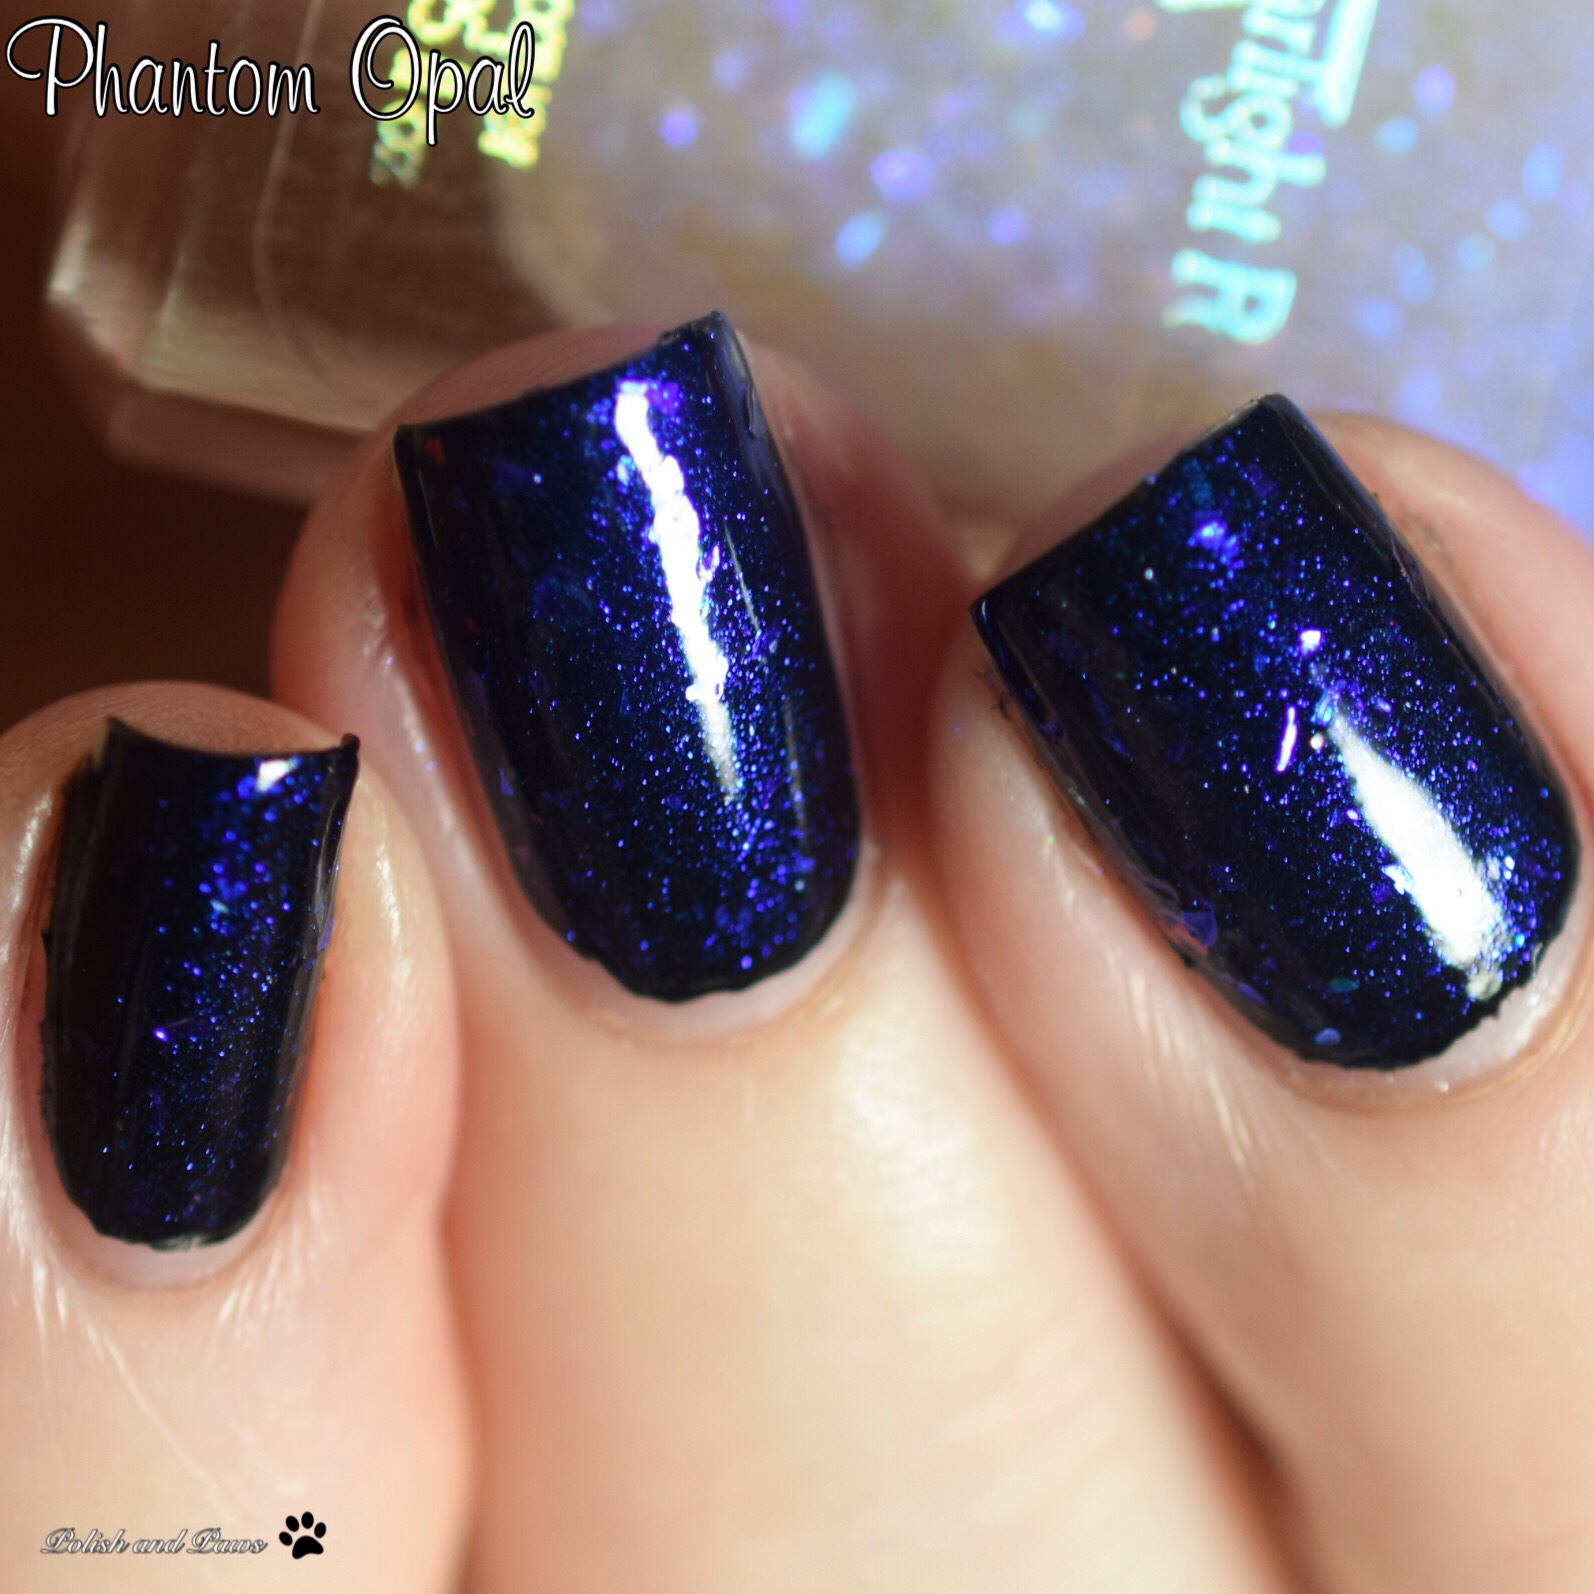 Starlight Polish Phantom Opal